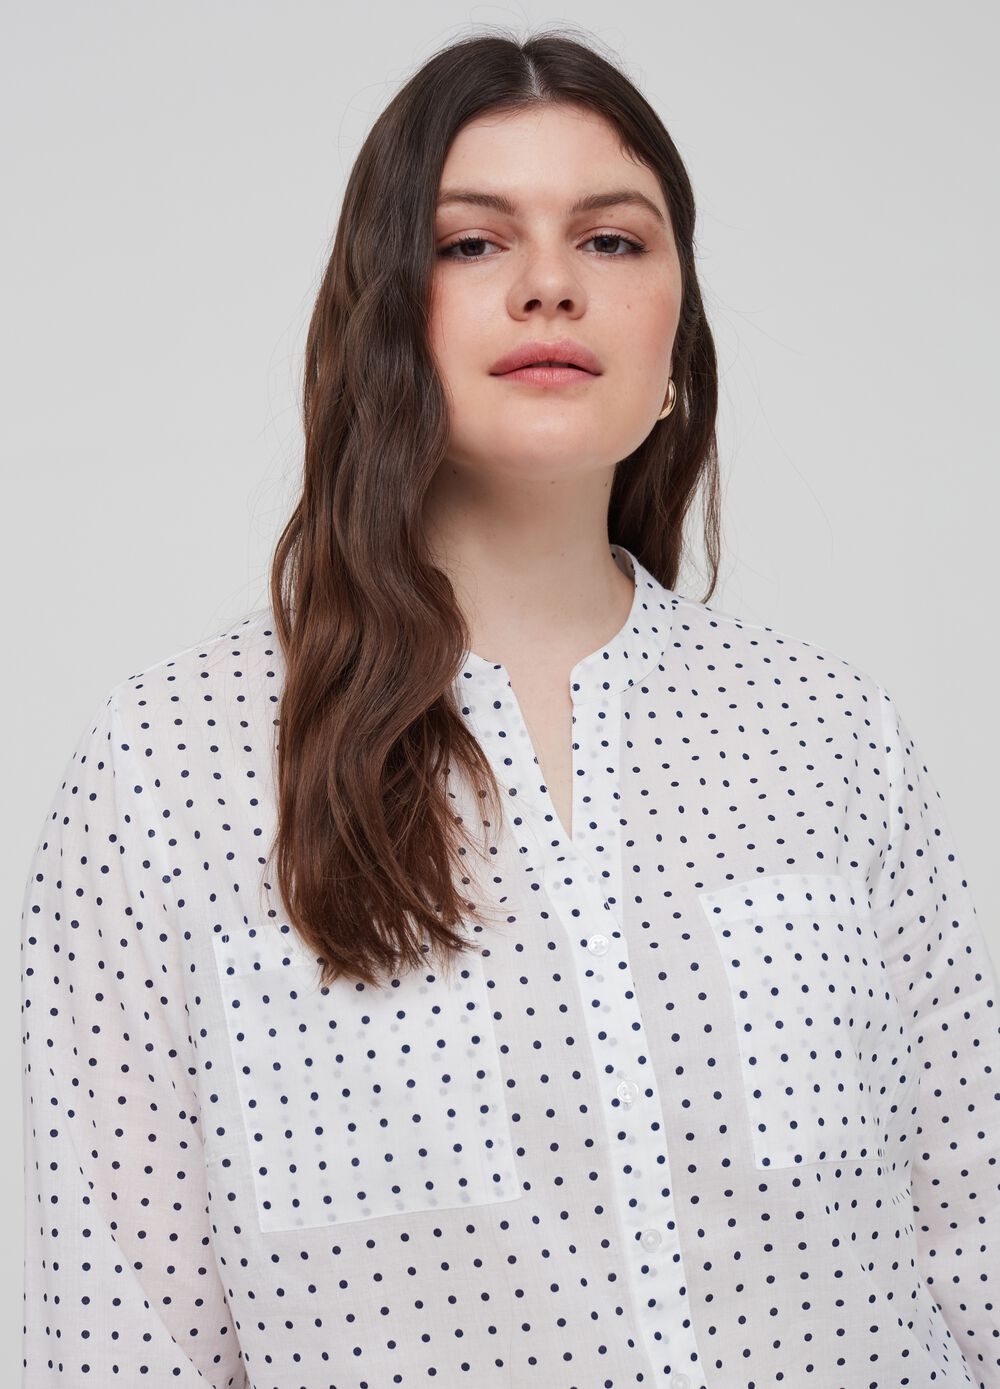 Curvy polka dot shirt in 100% cotton